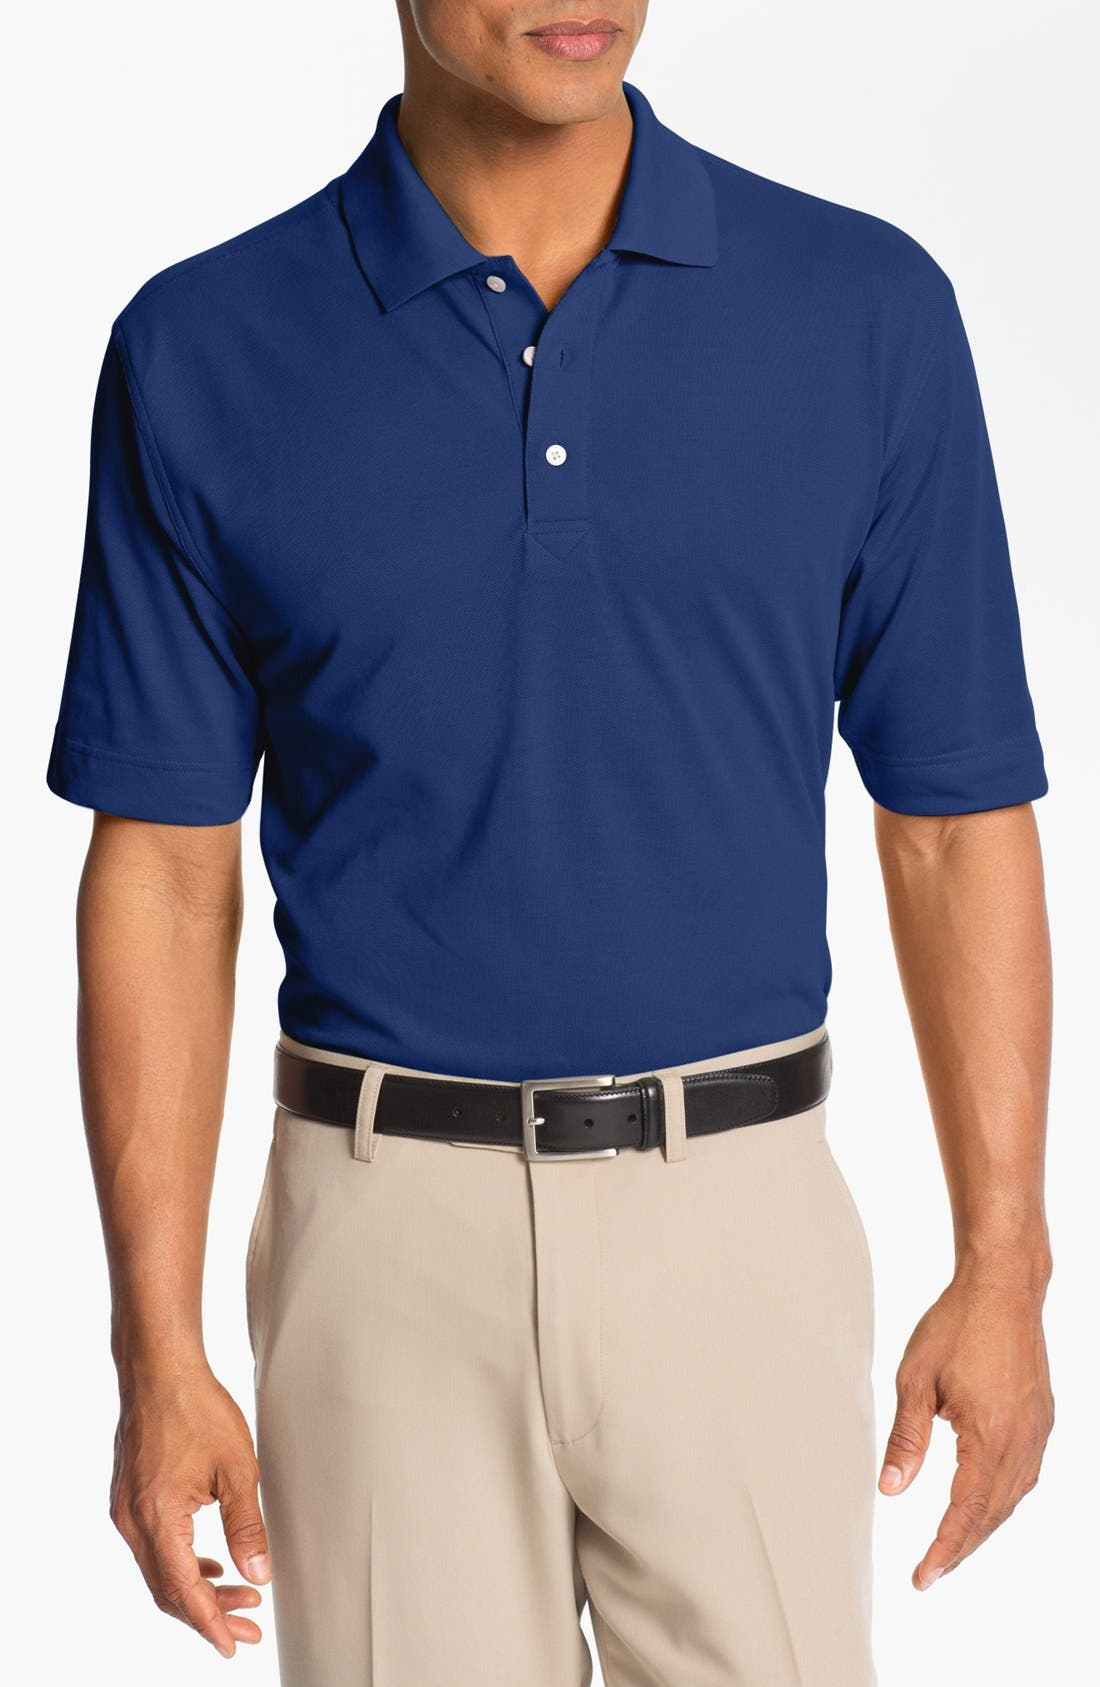 Cutter & Buck 'Championship' DryTec Golf Polo (Big & Tall)